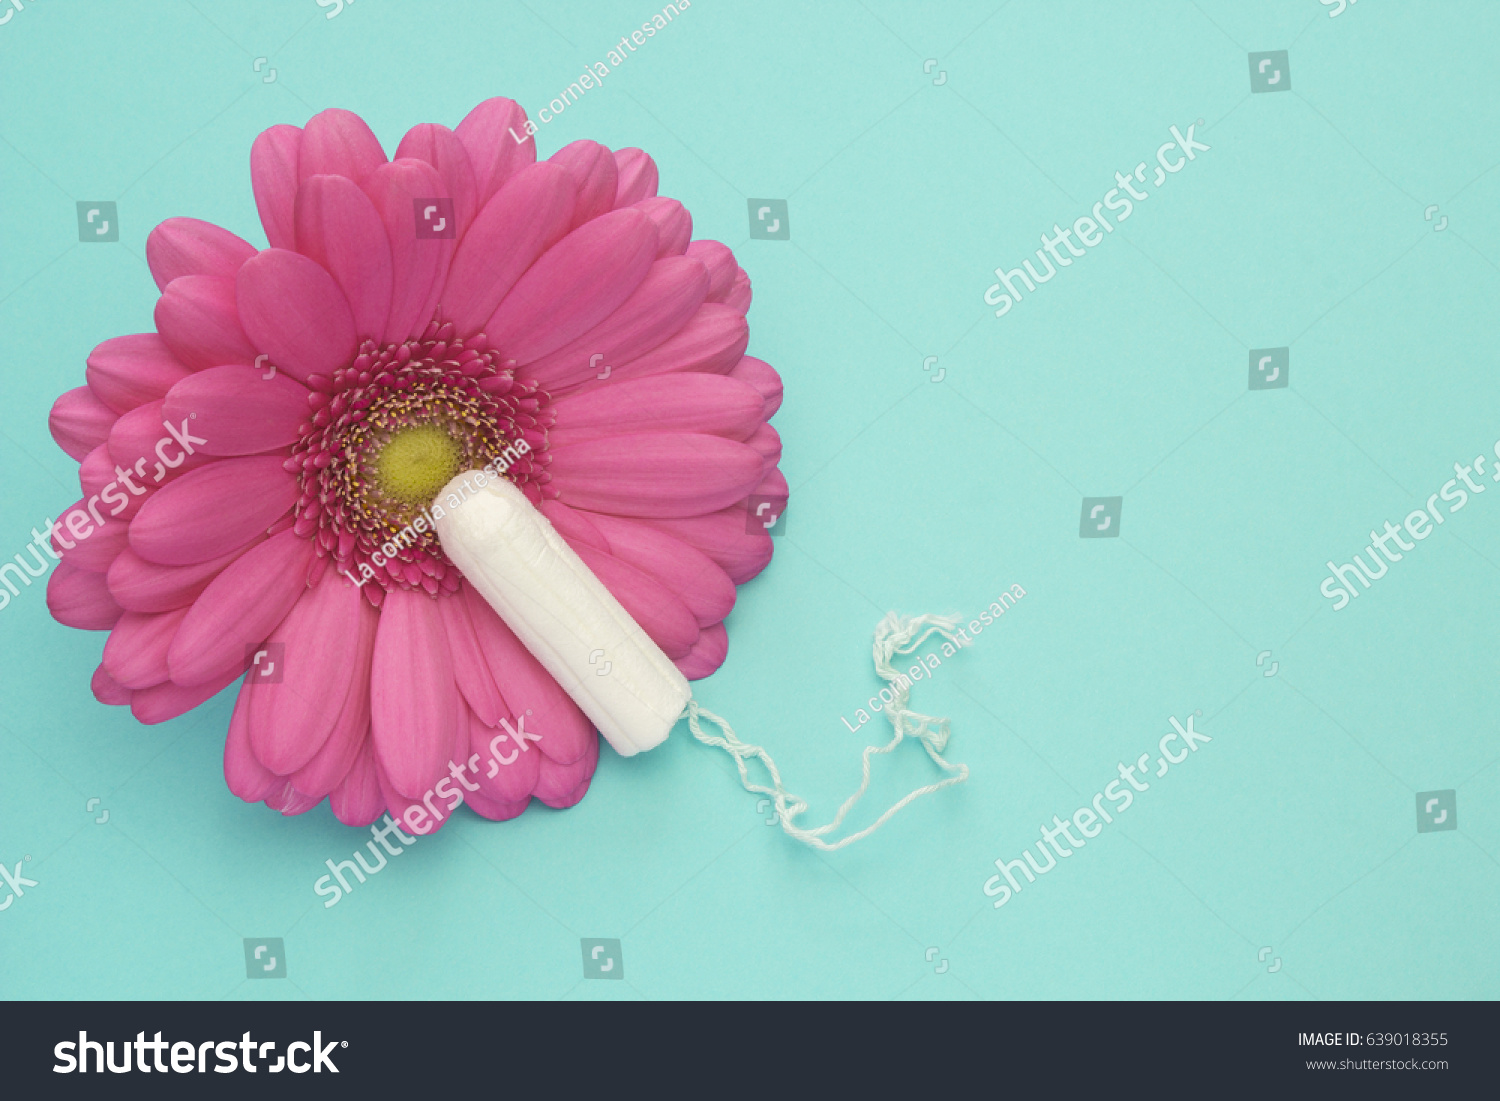 Menstruation Tampon Pink Gerbera Daisy Flower Stock Photo (Royalty ...